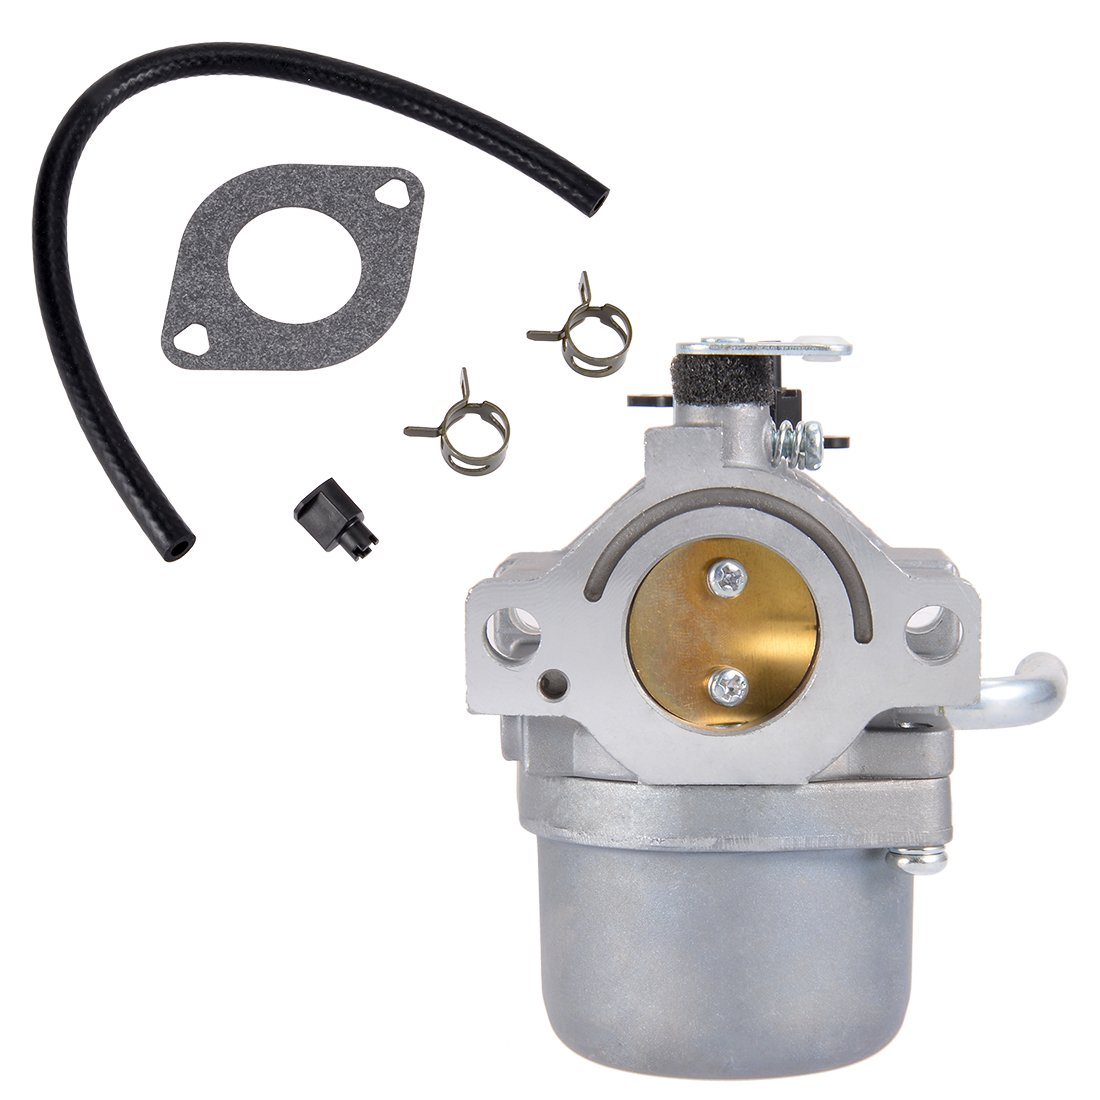 uxcell 590399 Carburetor Carb for Briggs & Stratton 796077 Lawn Mower Engine with Gasket Fuel Line